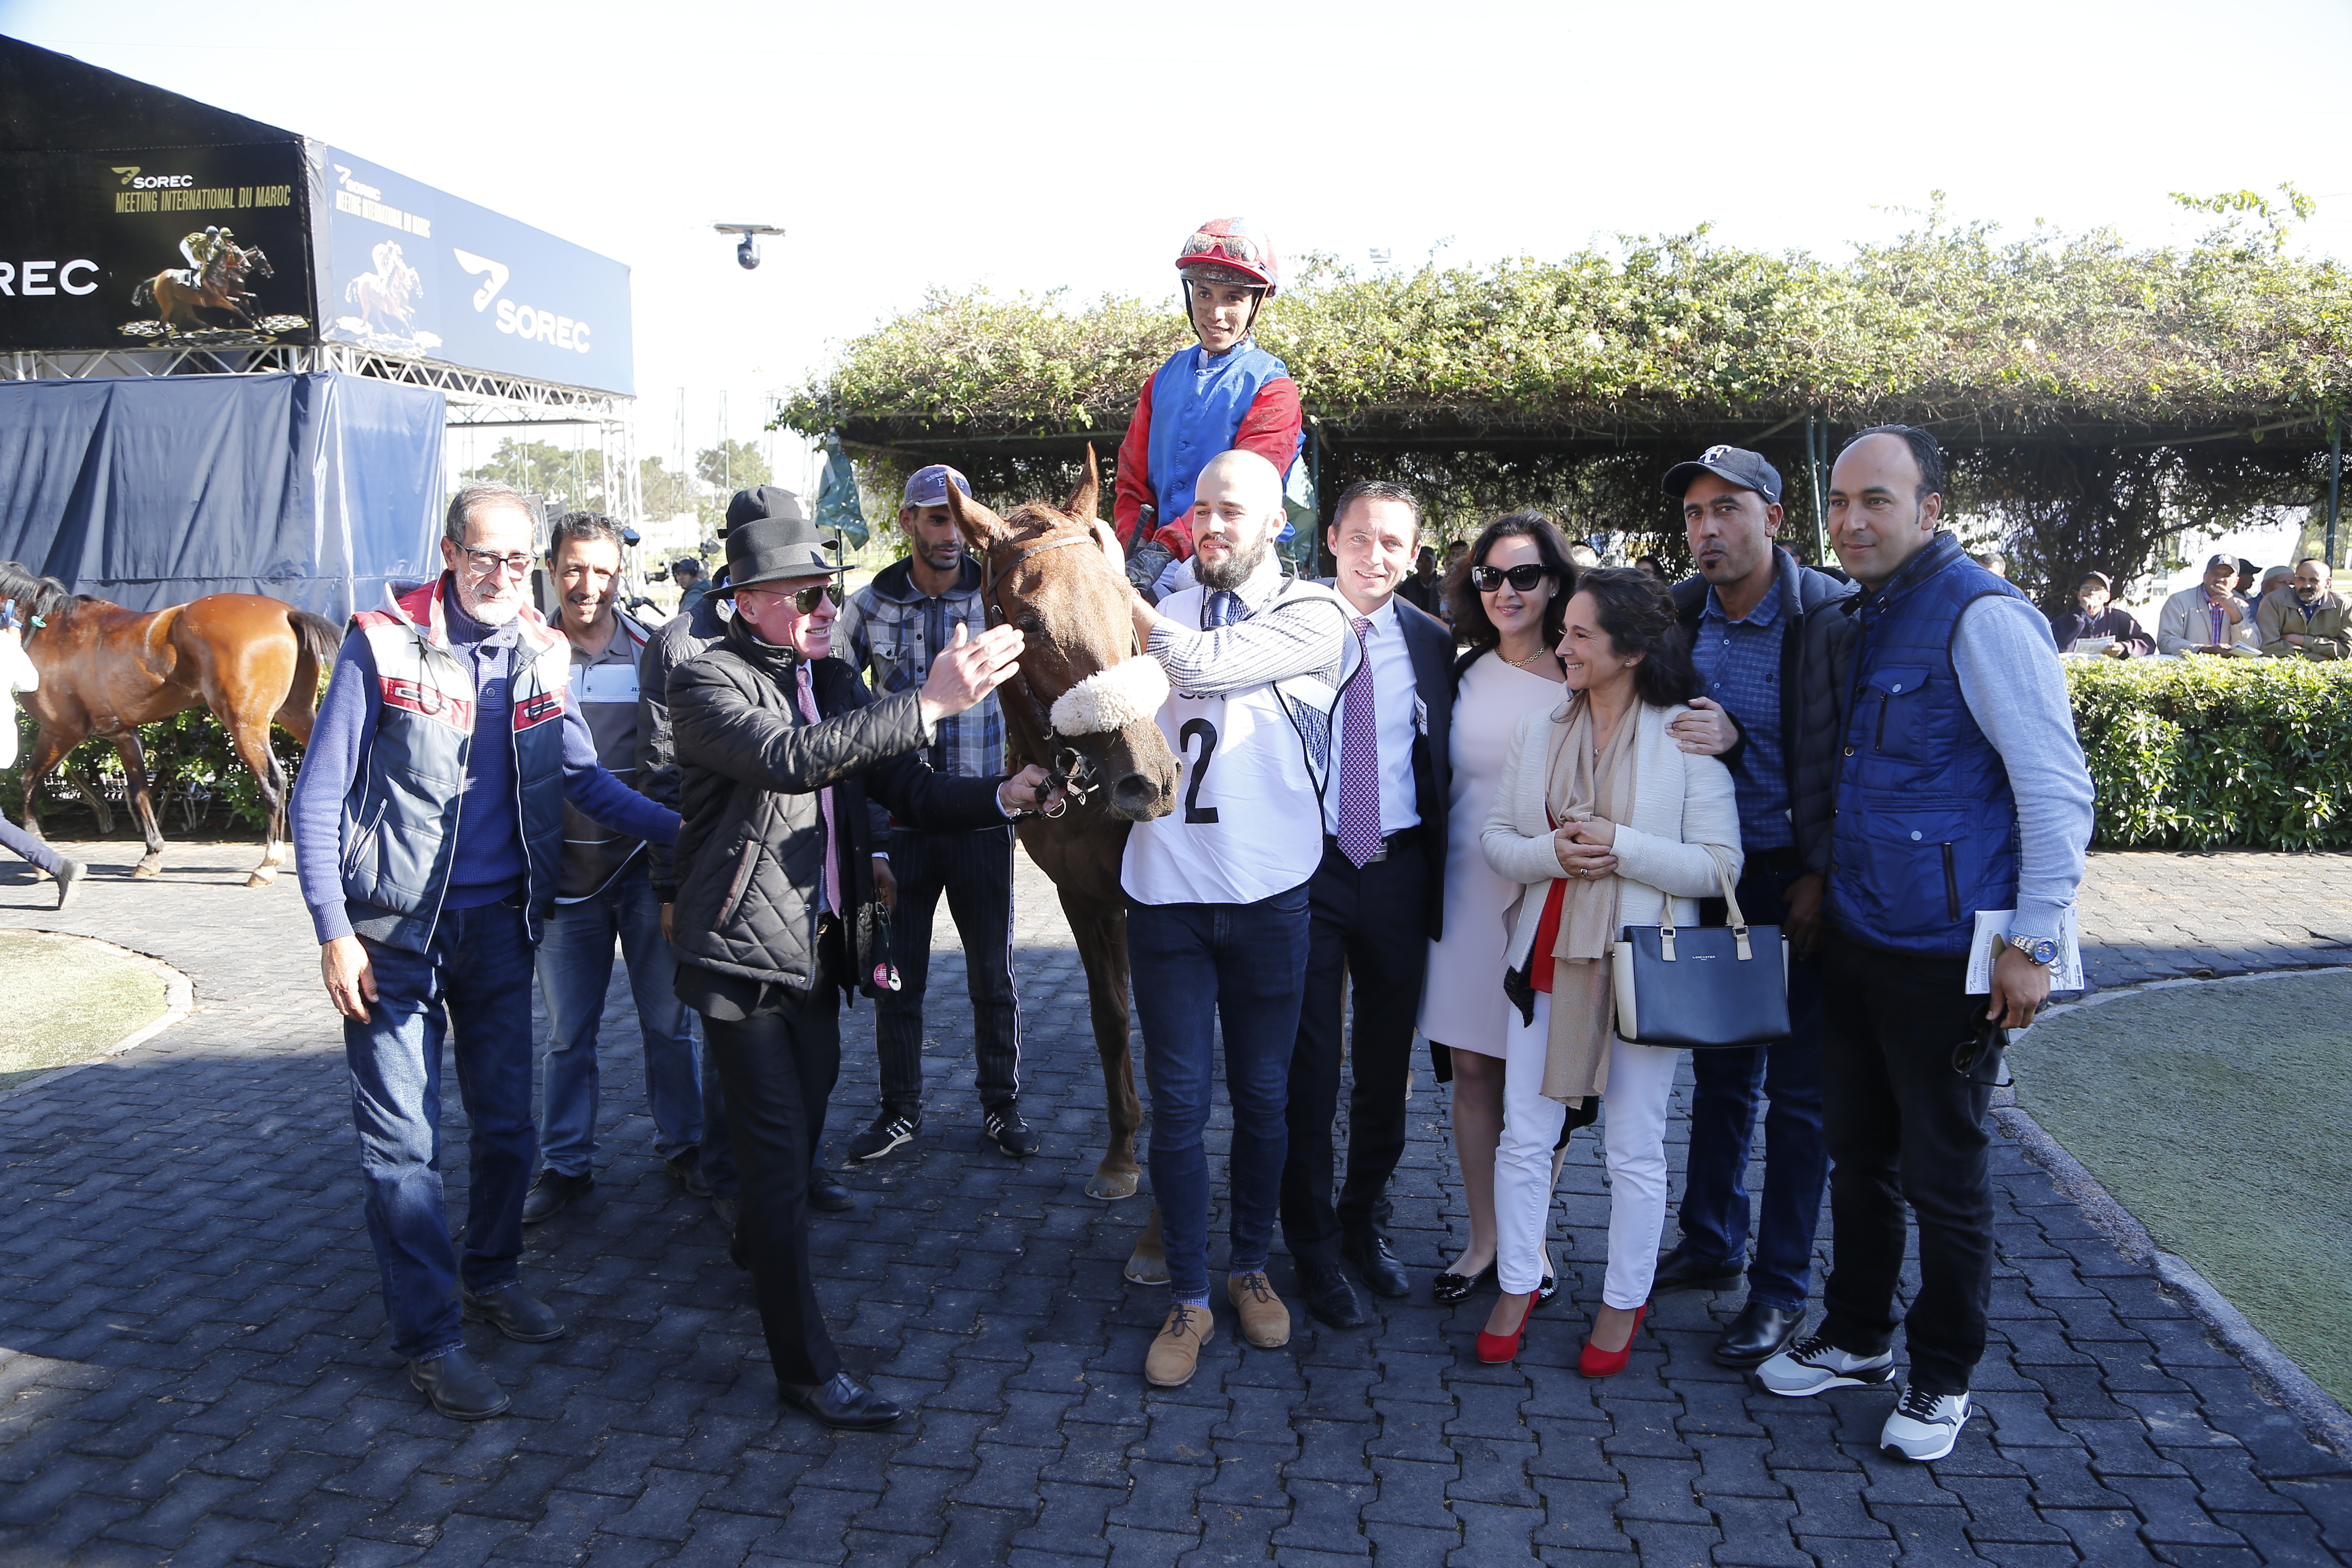 GRAND PRIX DE S.A.R. LE PRINCE MOULAY RACHID - Al Noury makes a triumphant homecoming